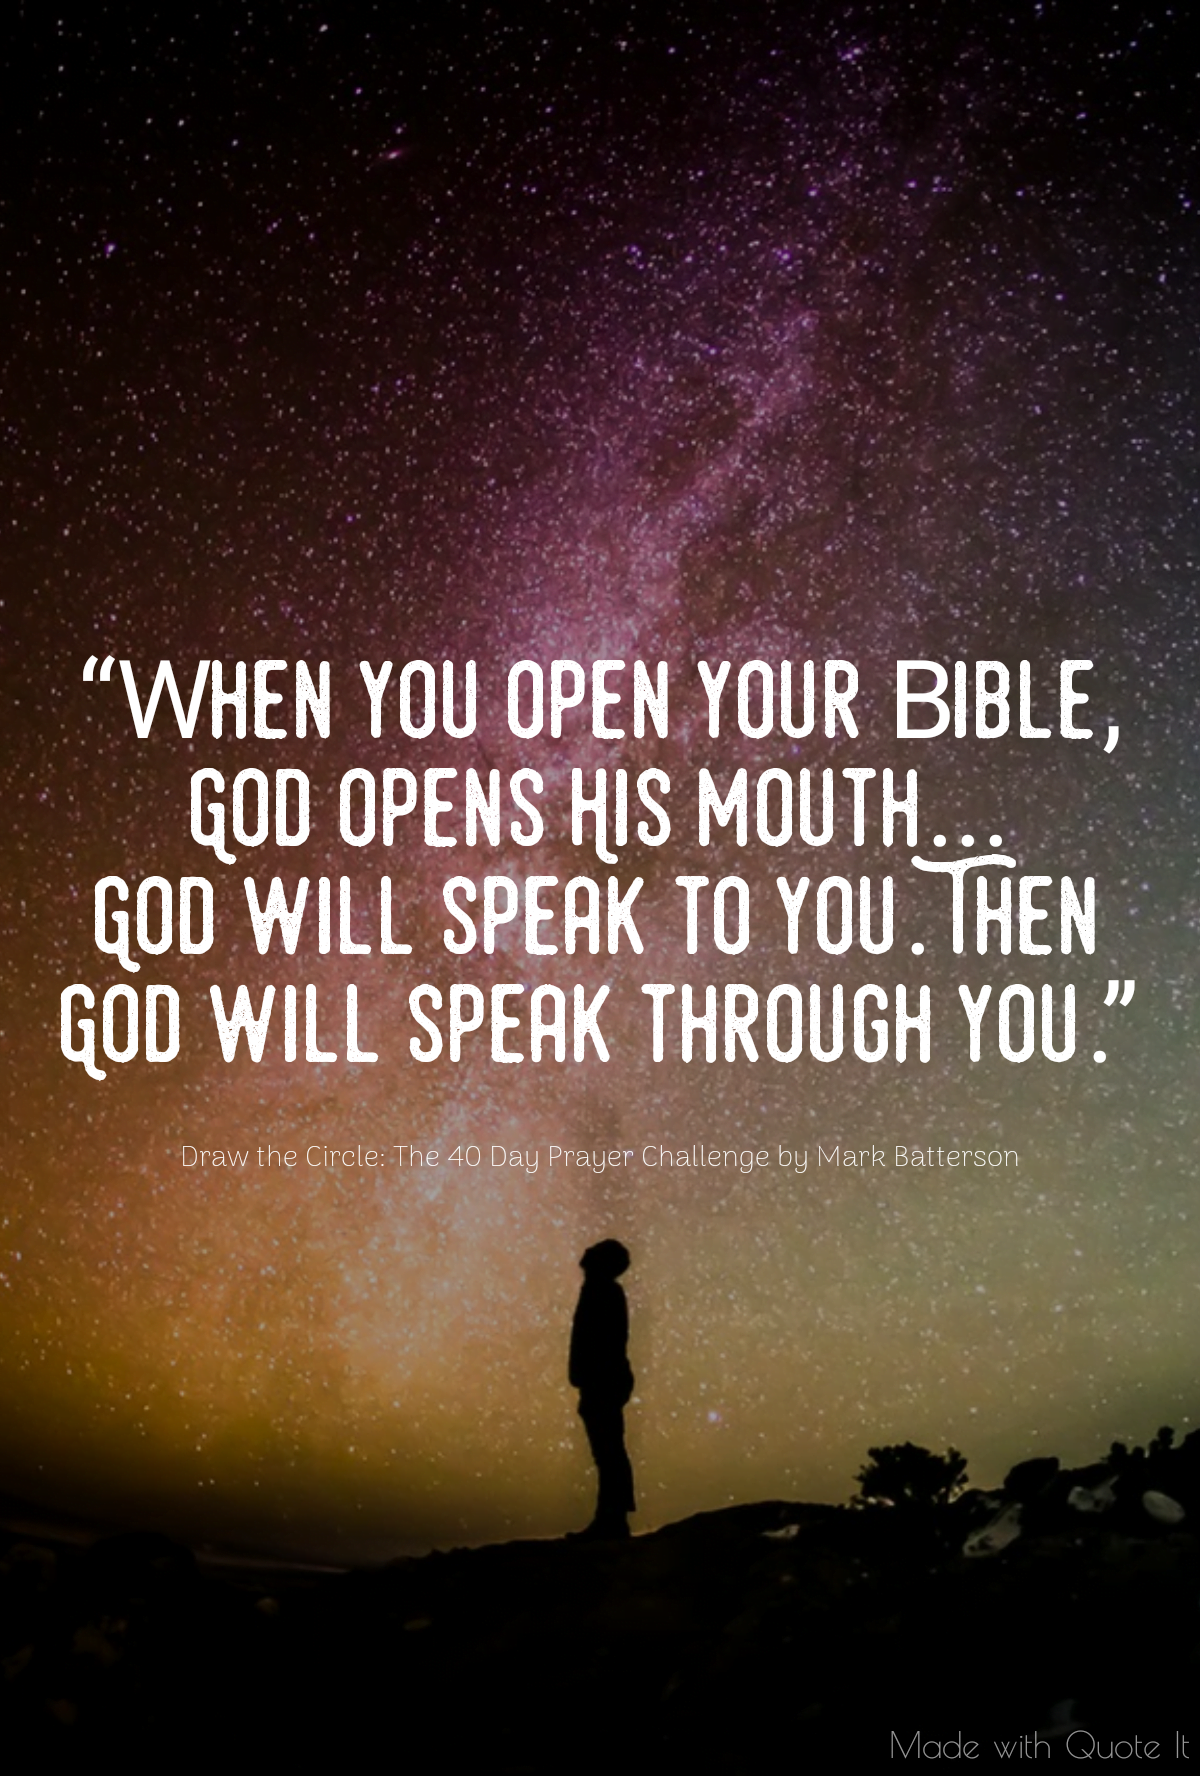 """When you open your Bible, God opens His mouth...God will speak to you. Then God will speak through you."" - Draw the Circle: The 40 Day Prayer Challenge by Mark Batterson"